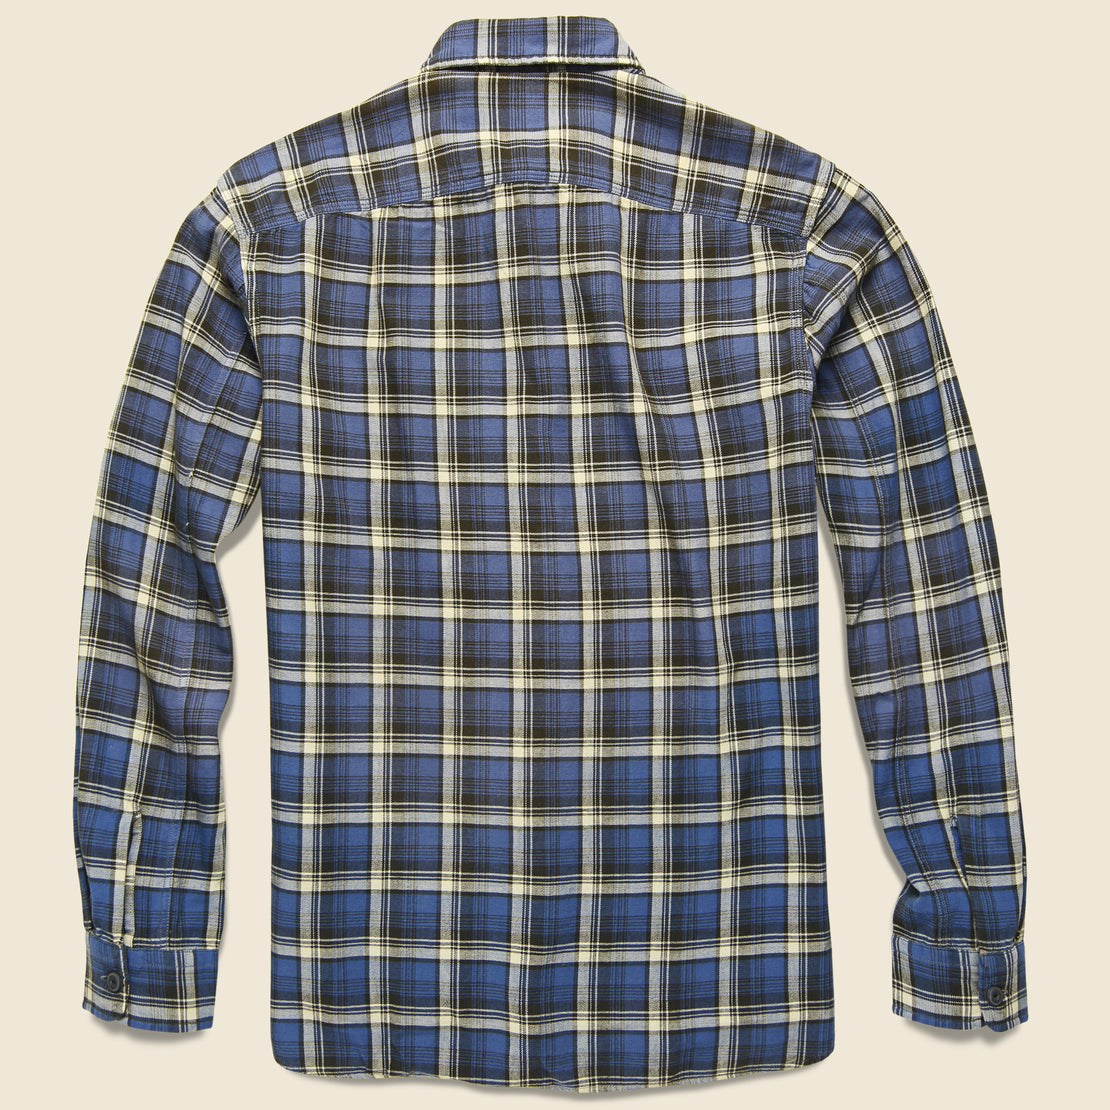 Farrell Plaid Workshirt - Navy/Grey